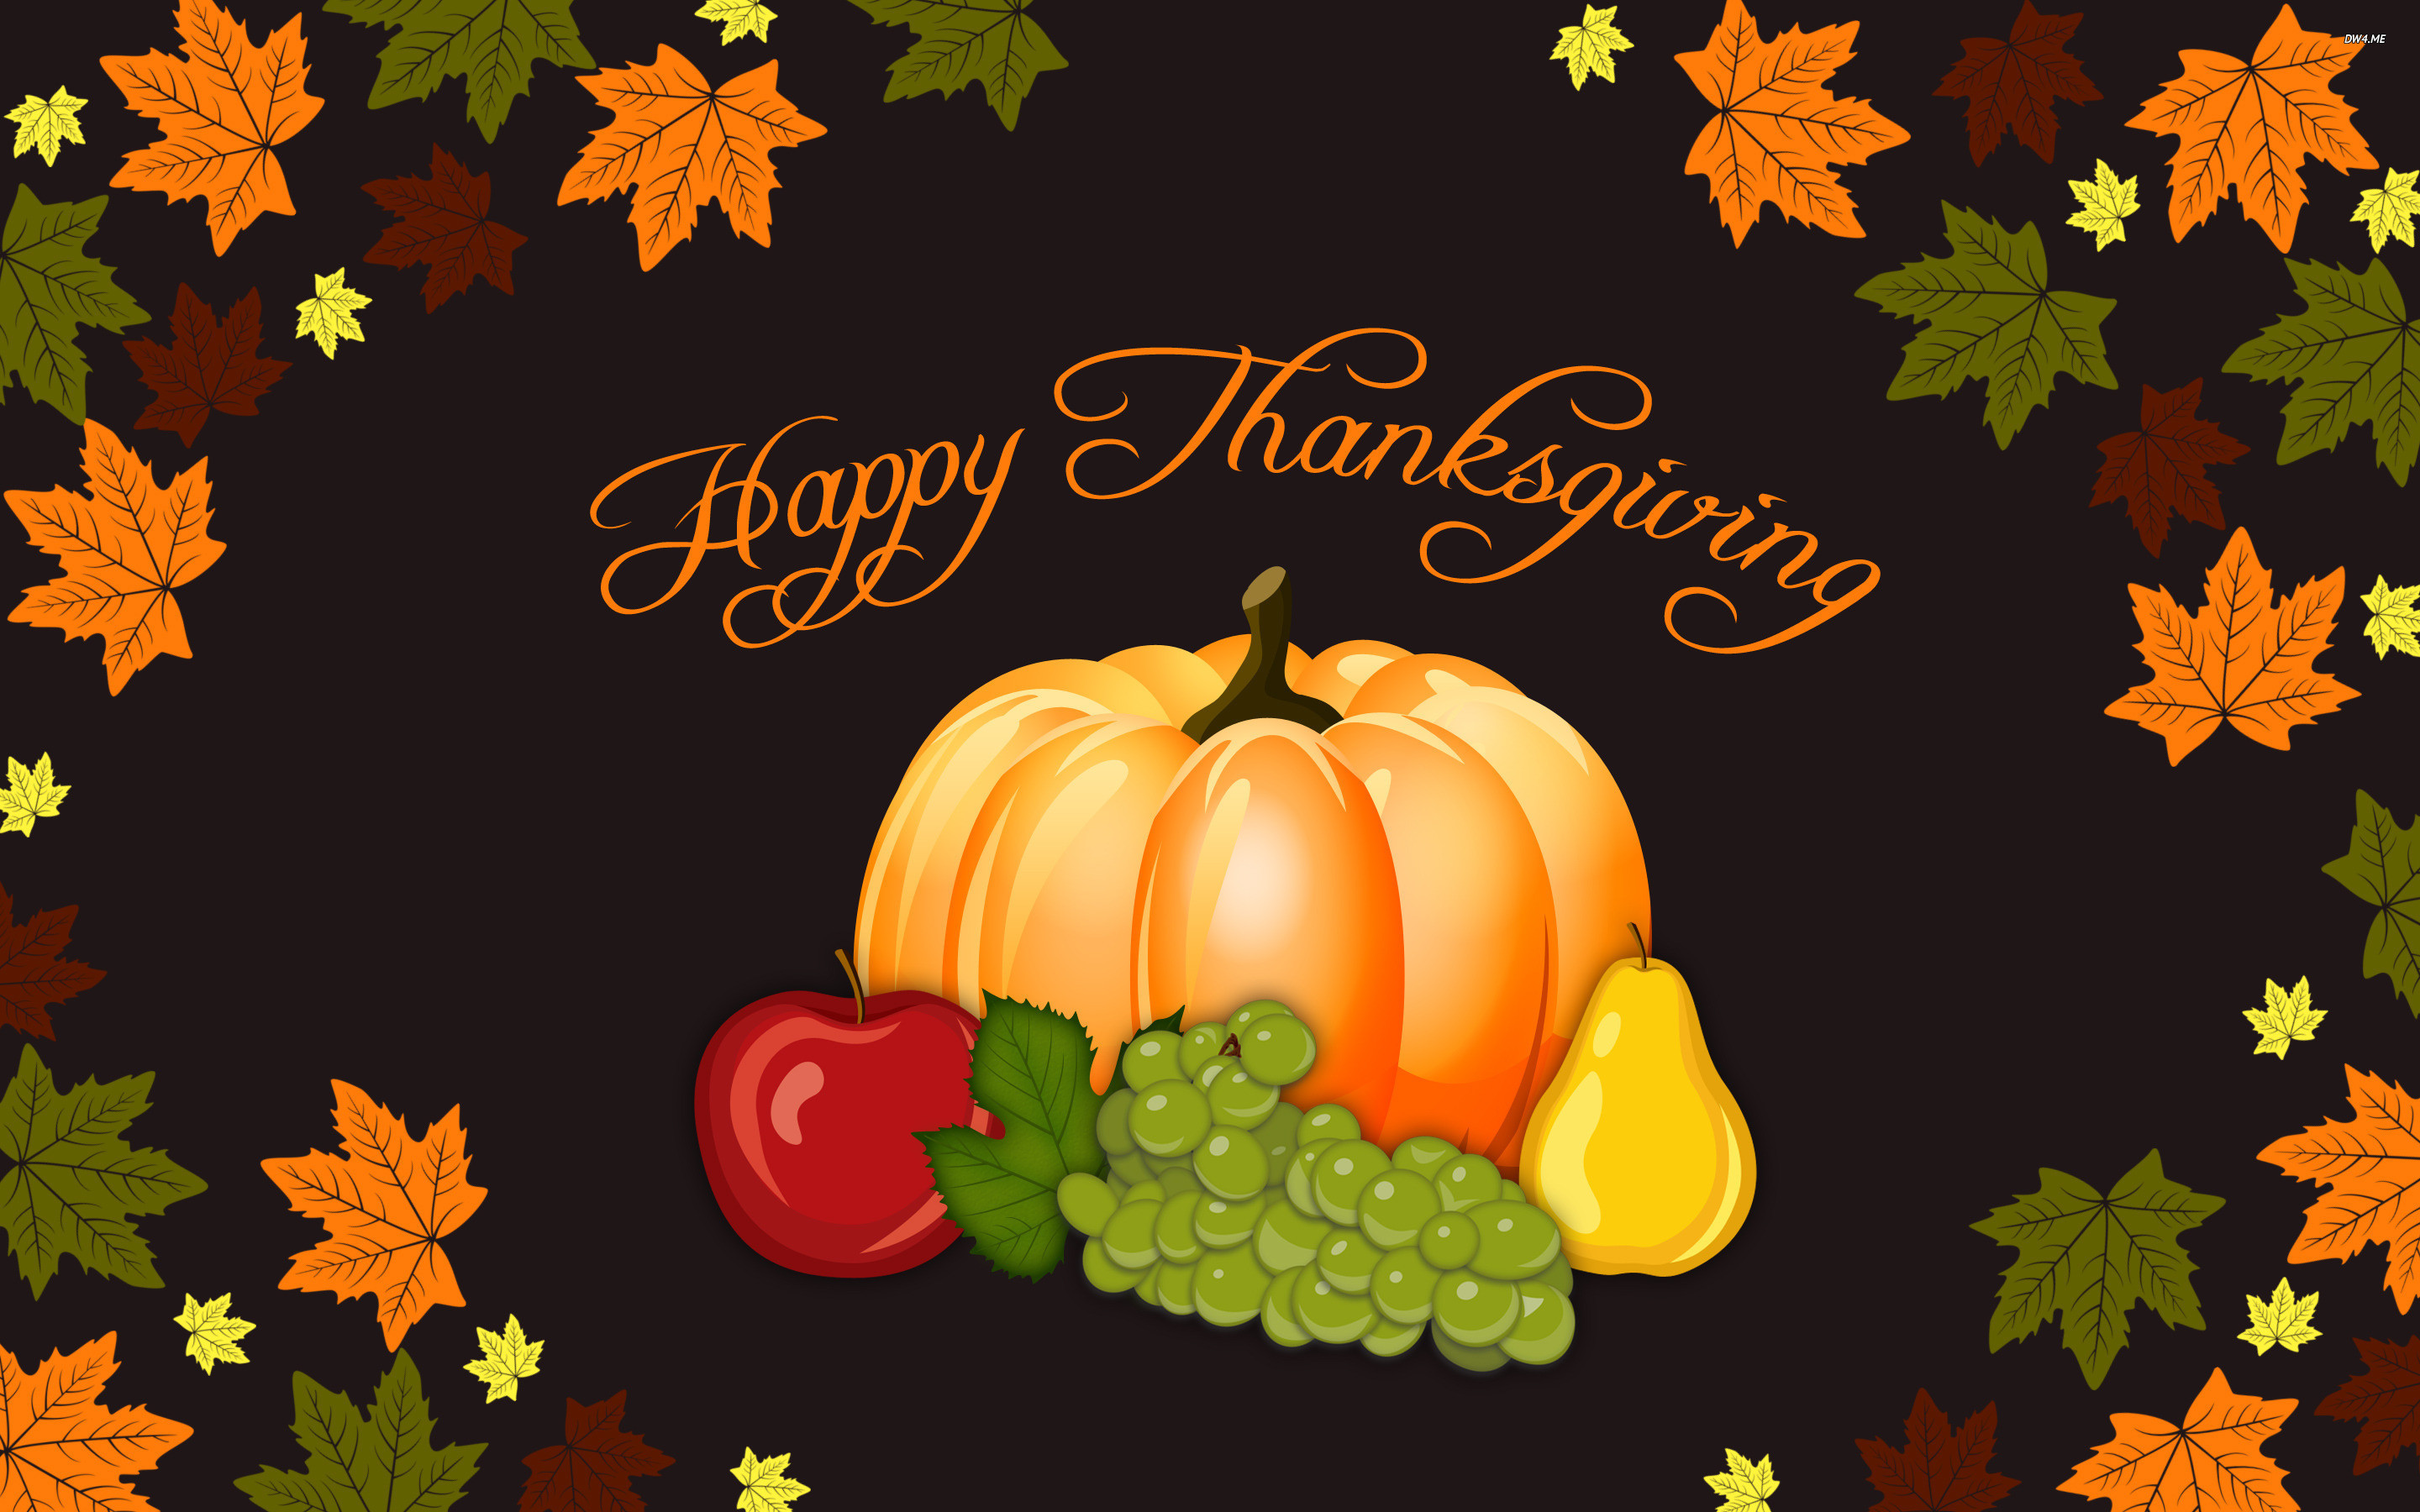 2880x1800 Free Desktop Wallpapers Thanksgiving Wallpaper